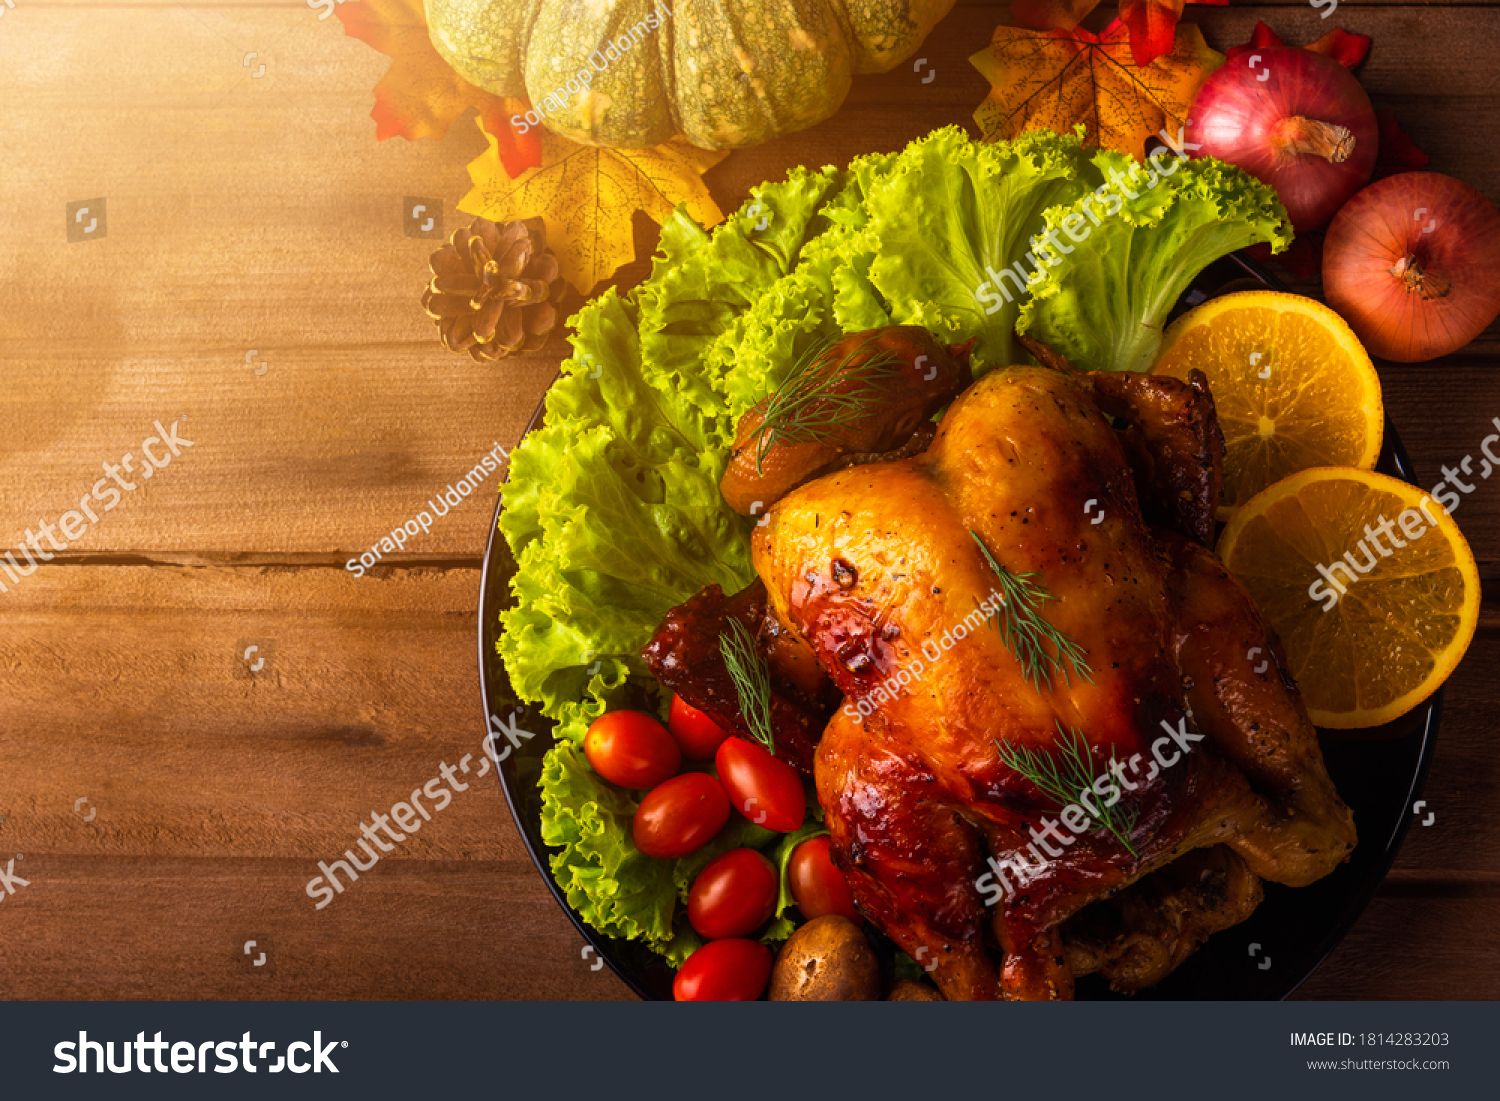 stock-photo-thanksgiving-baked-turkey-or